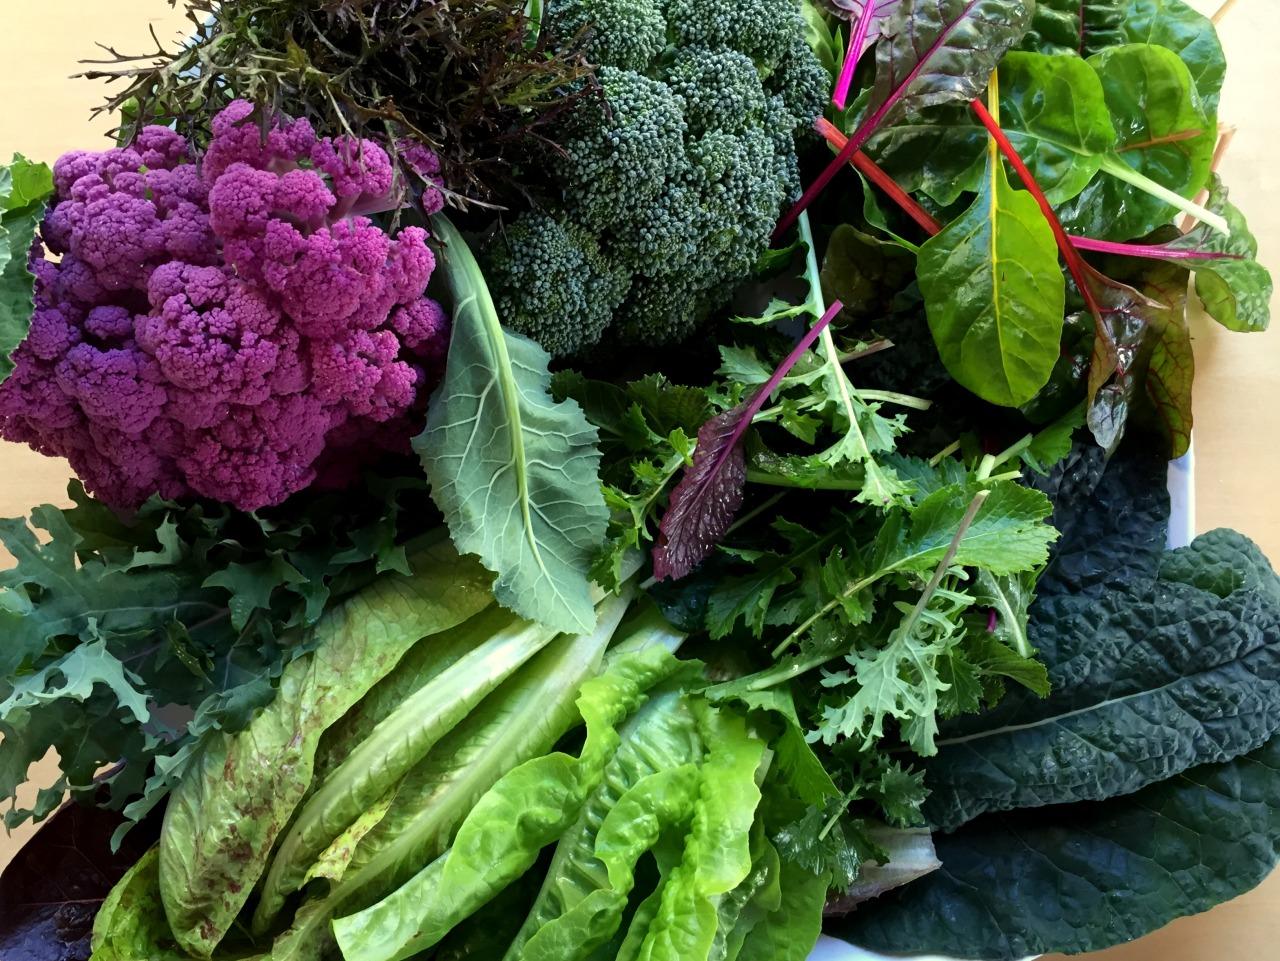 February 10, 2015   A   gift tray from the garden–purple cauliflower, mustard greens, broccoli, Swiss chard, spicy greens, Tuscan kale, lettuce, red winter kale.